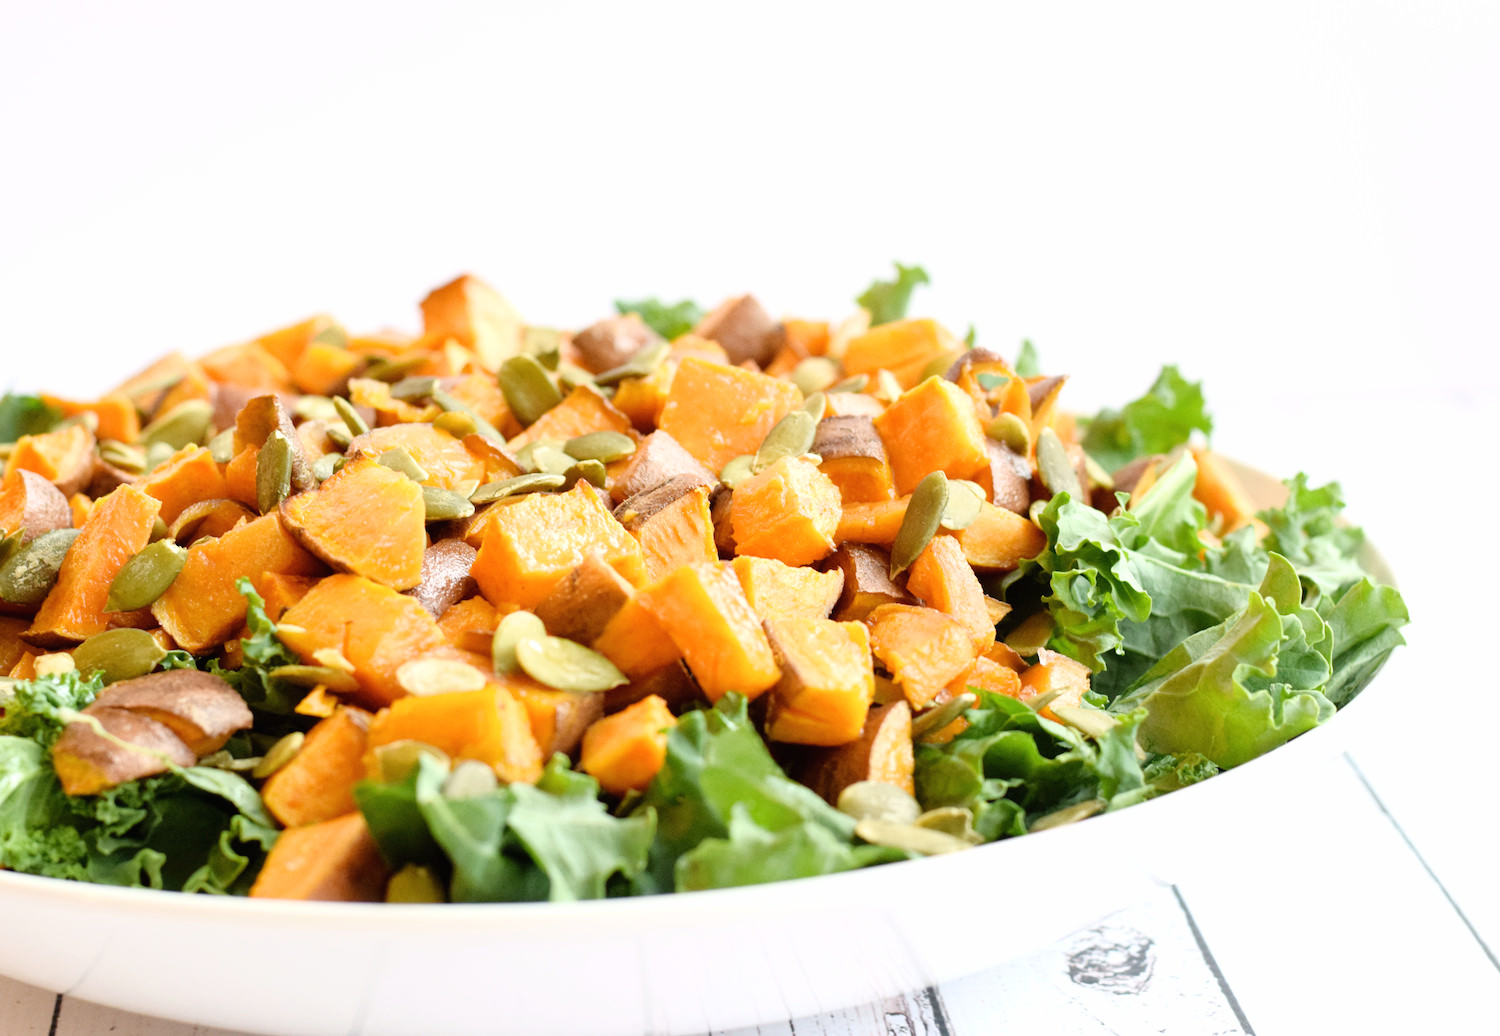 Kale Sweet Potato Tahini Salad – easy, delicious, wholesome, flavorful kale salad with a perfect tahini dressing. My new favorite salad!   trufflesandtrends.com